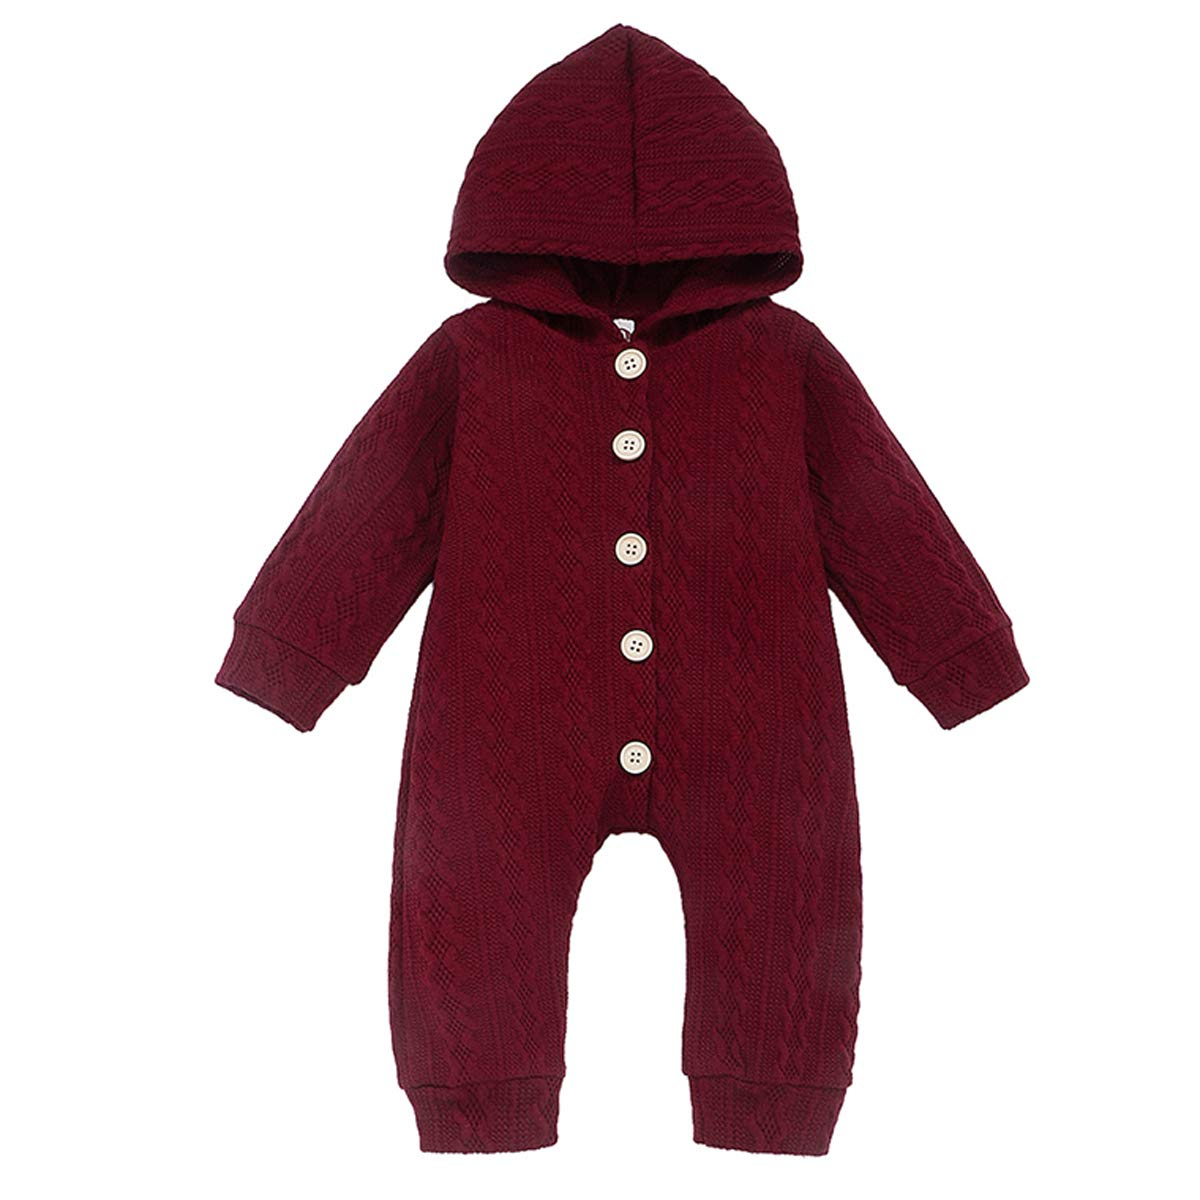 Baby Boys Girls Knitted Sweater Jumpsuit Unisex Toddler Long Sleeve Romper Pure Color Autumn Winter Outfit